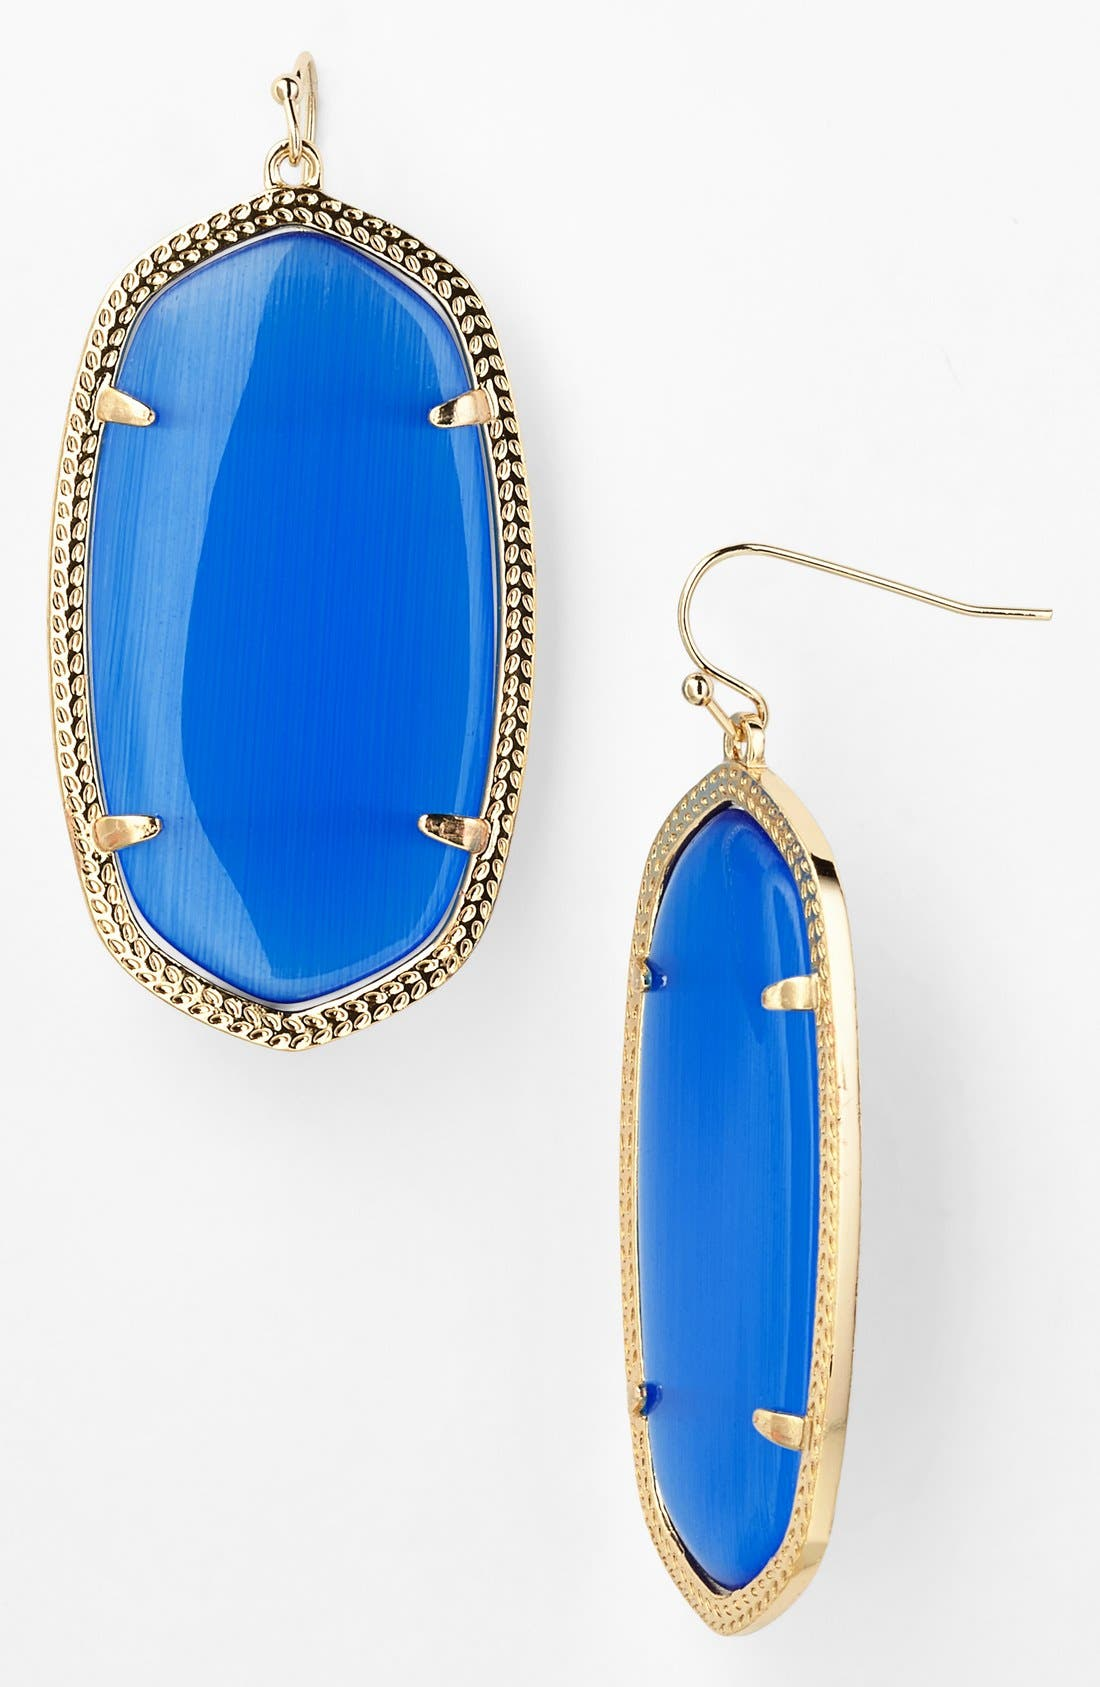 Danielle - Large Oval Statement Earrings,                             Main thumbnail 15, color,